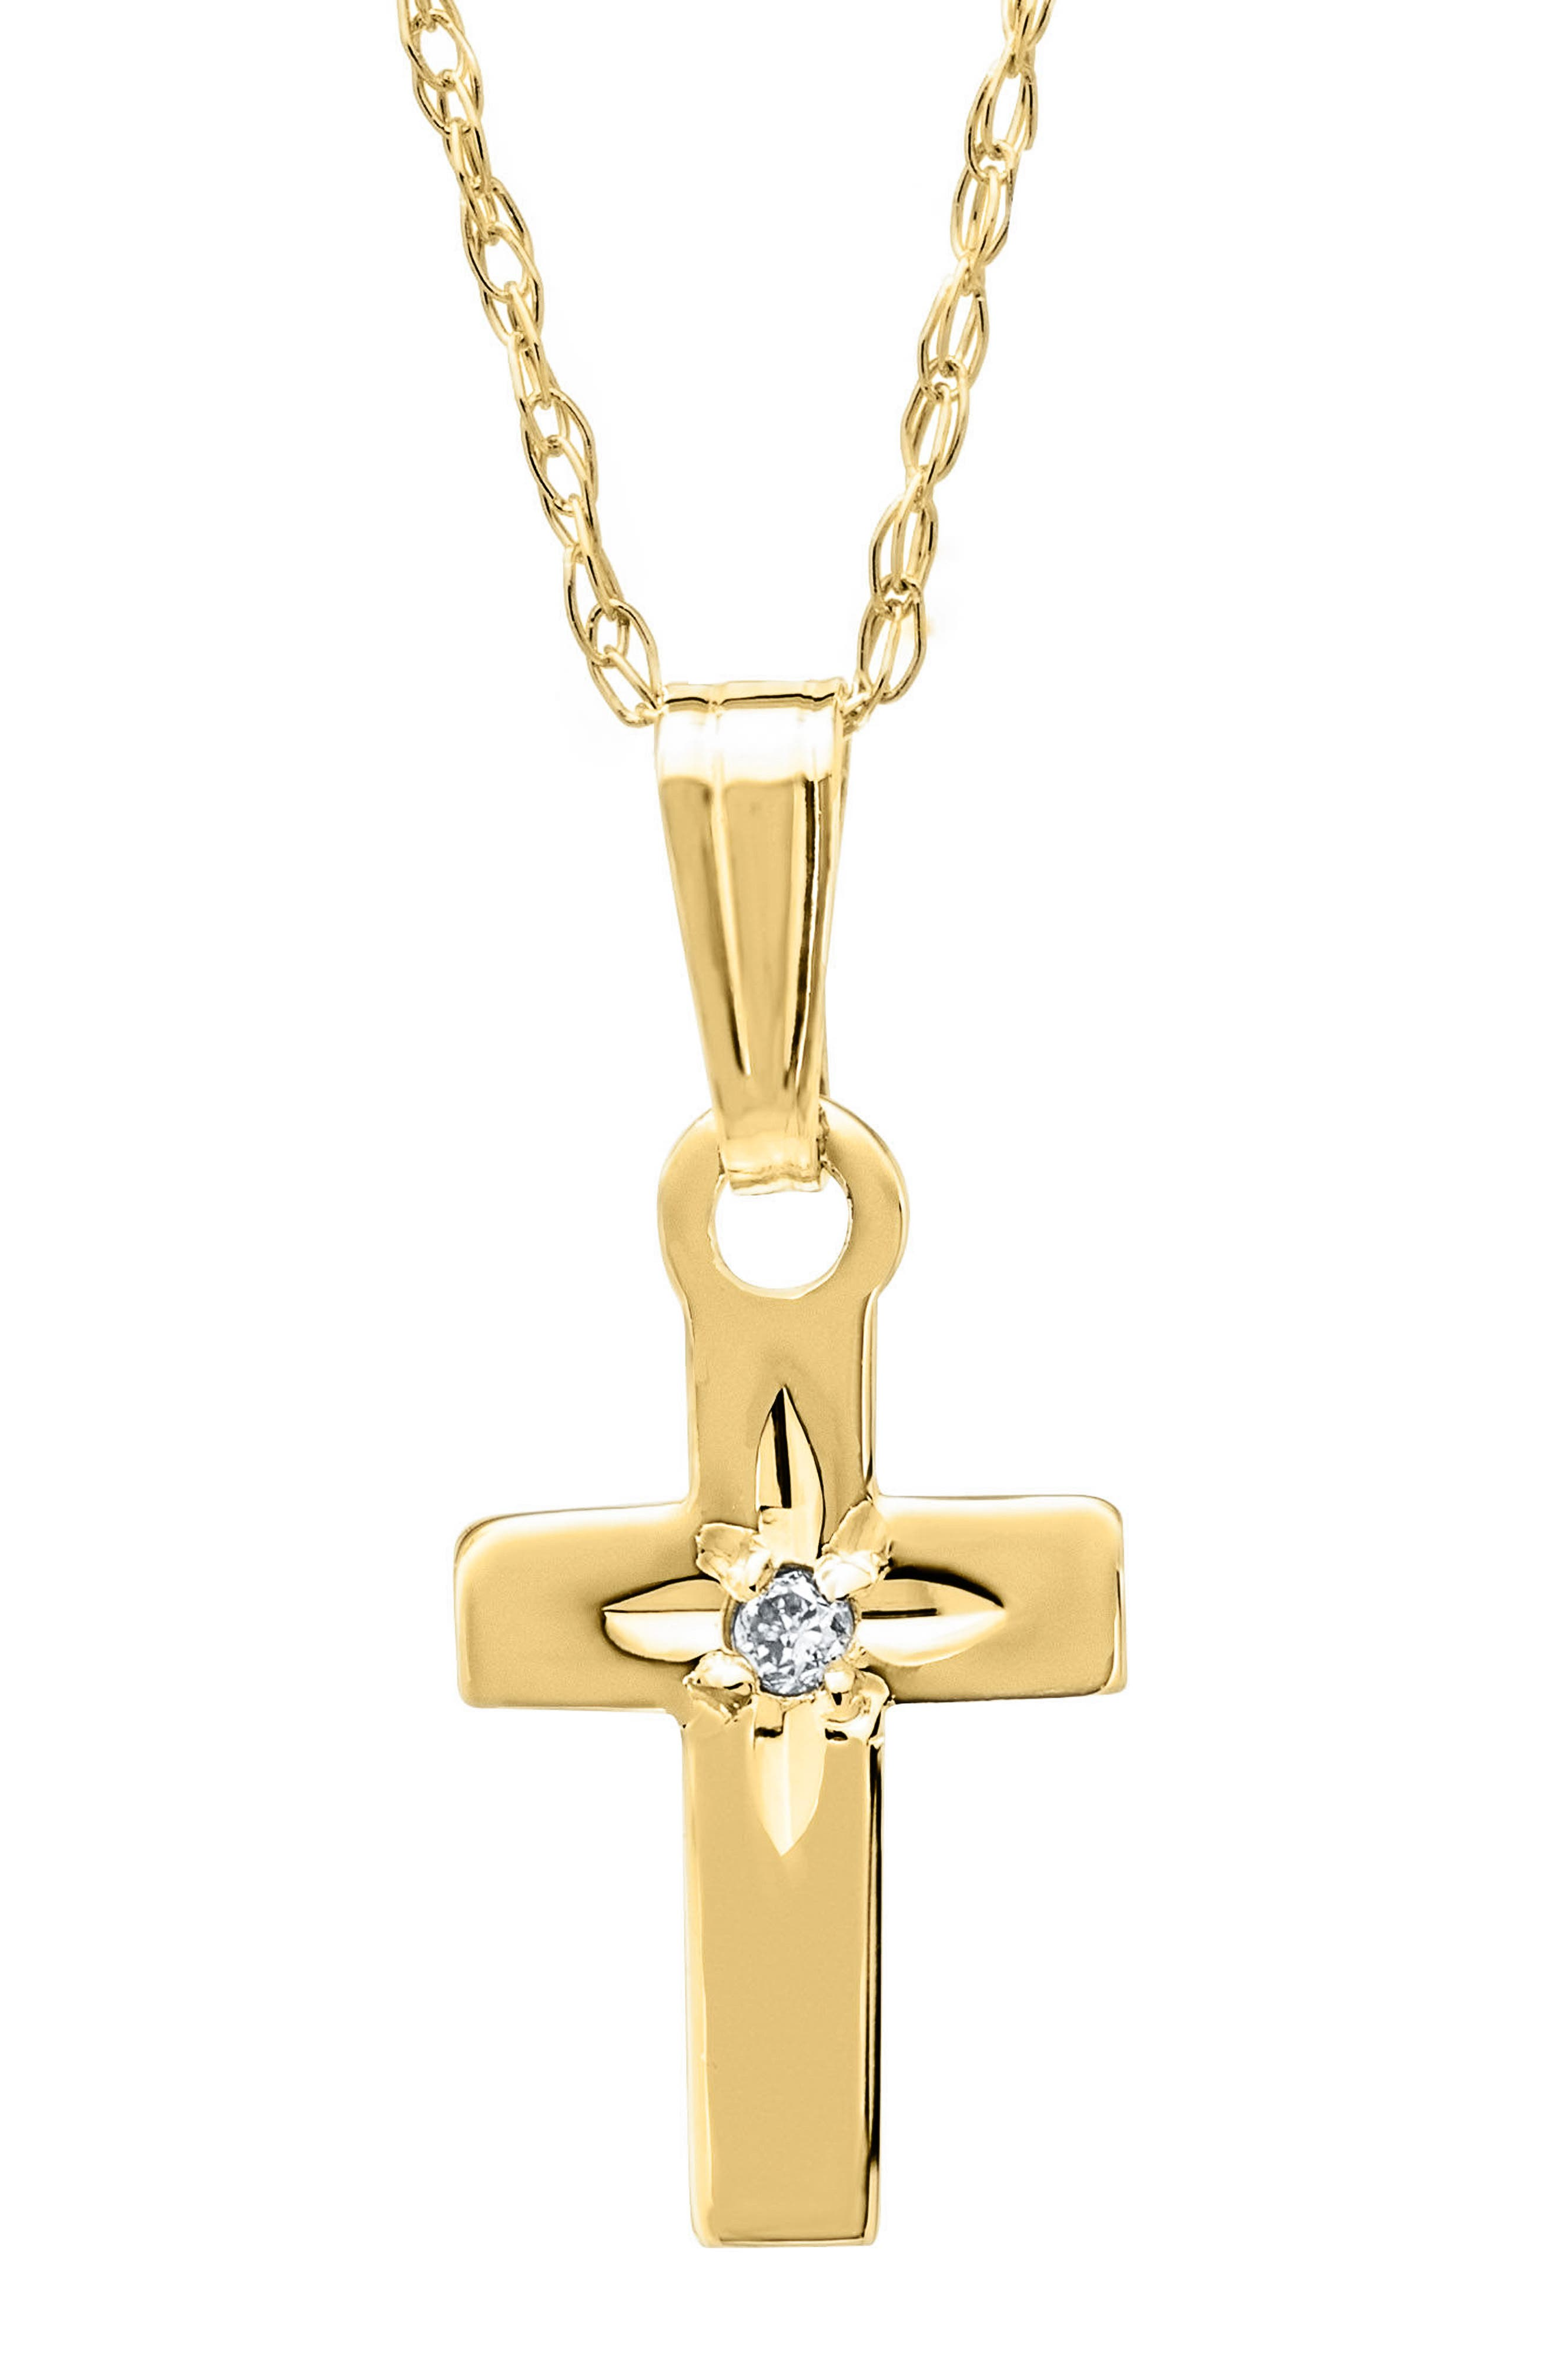 14k Gold & Diamond Cross Necklace,                             Main thumbnail 1, color,                             GOLD